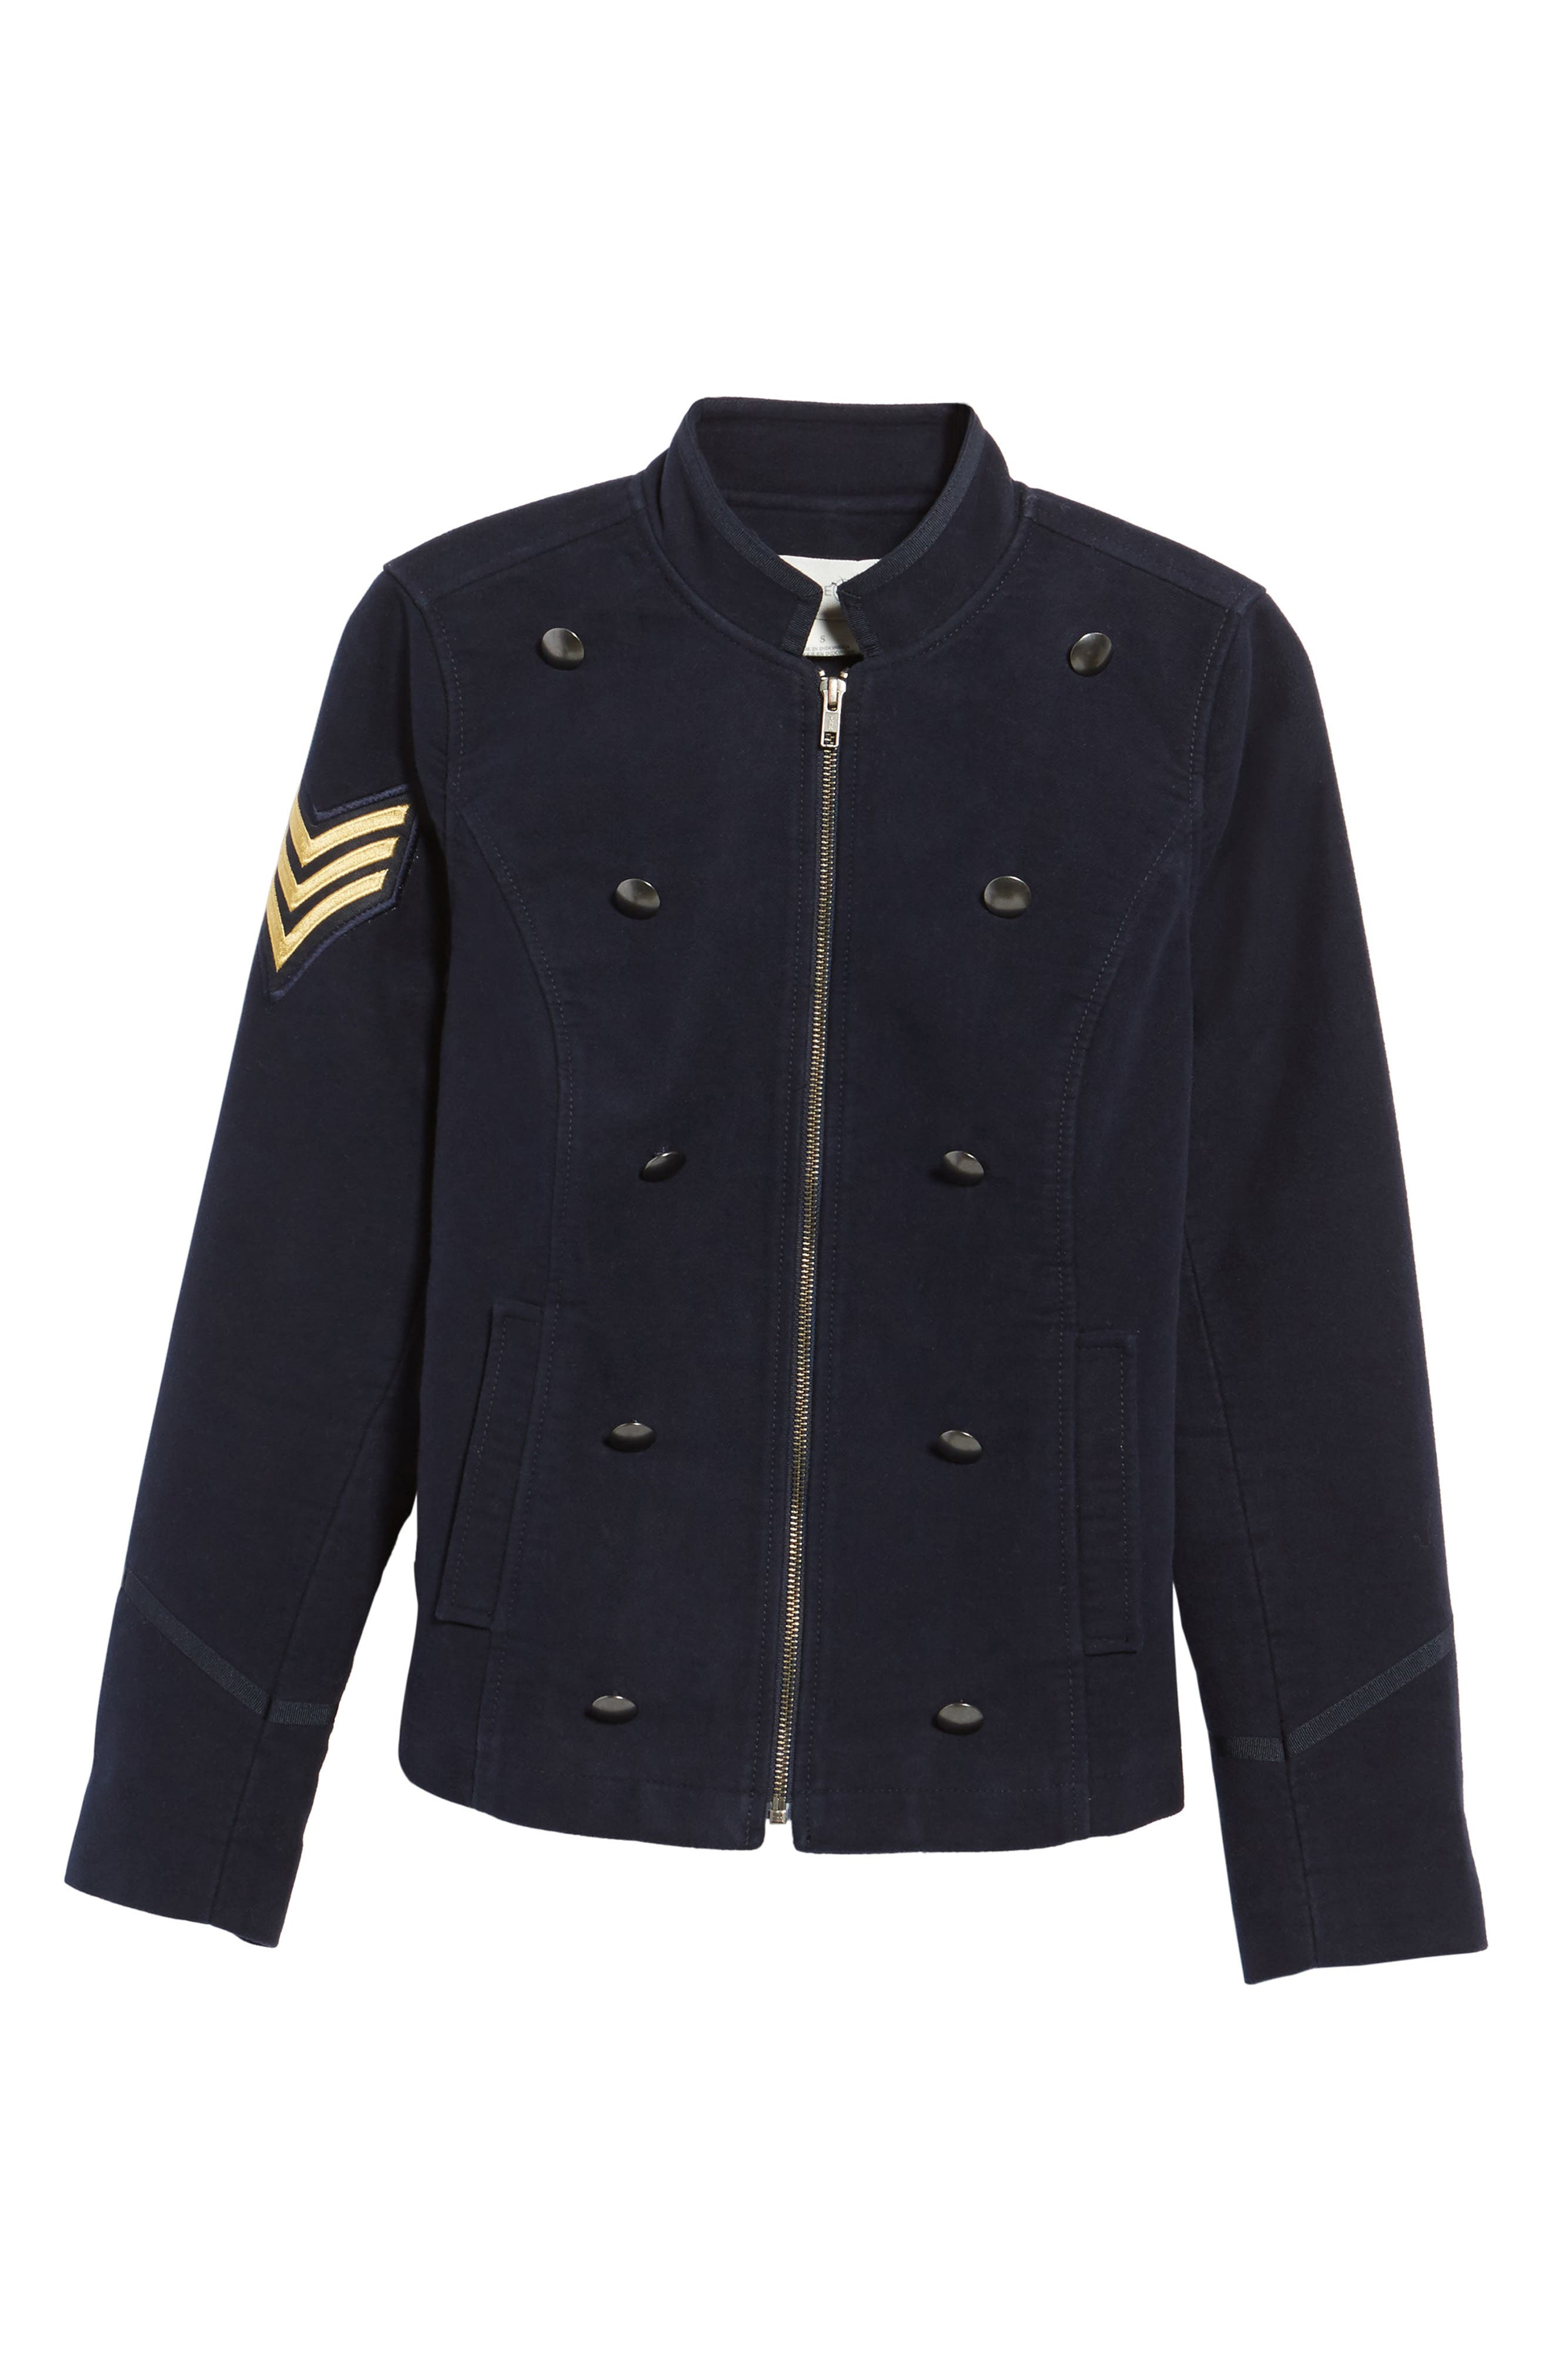 Officers Jacket,                             Alternate thumbnail 5, color,